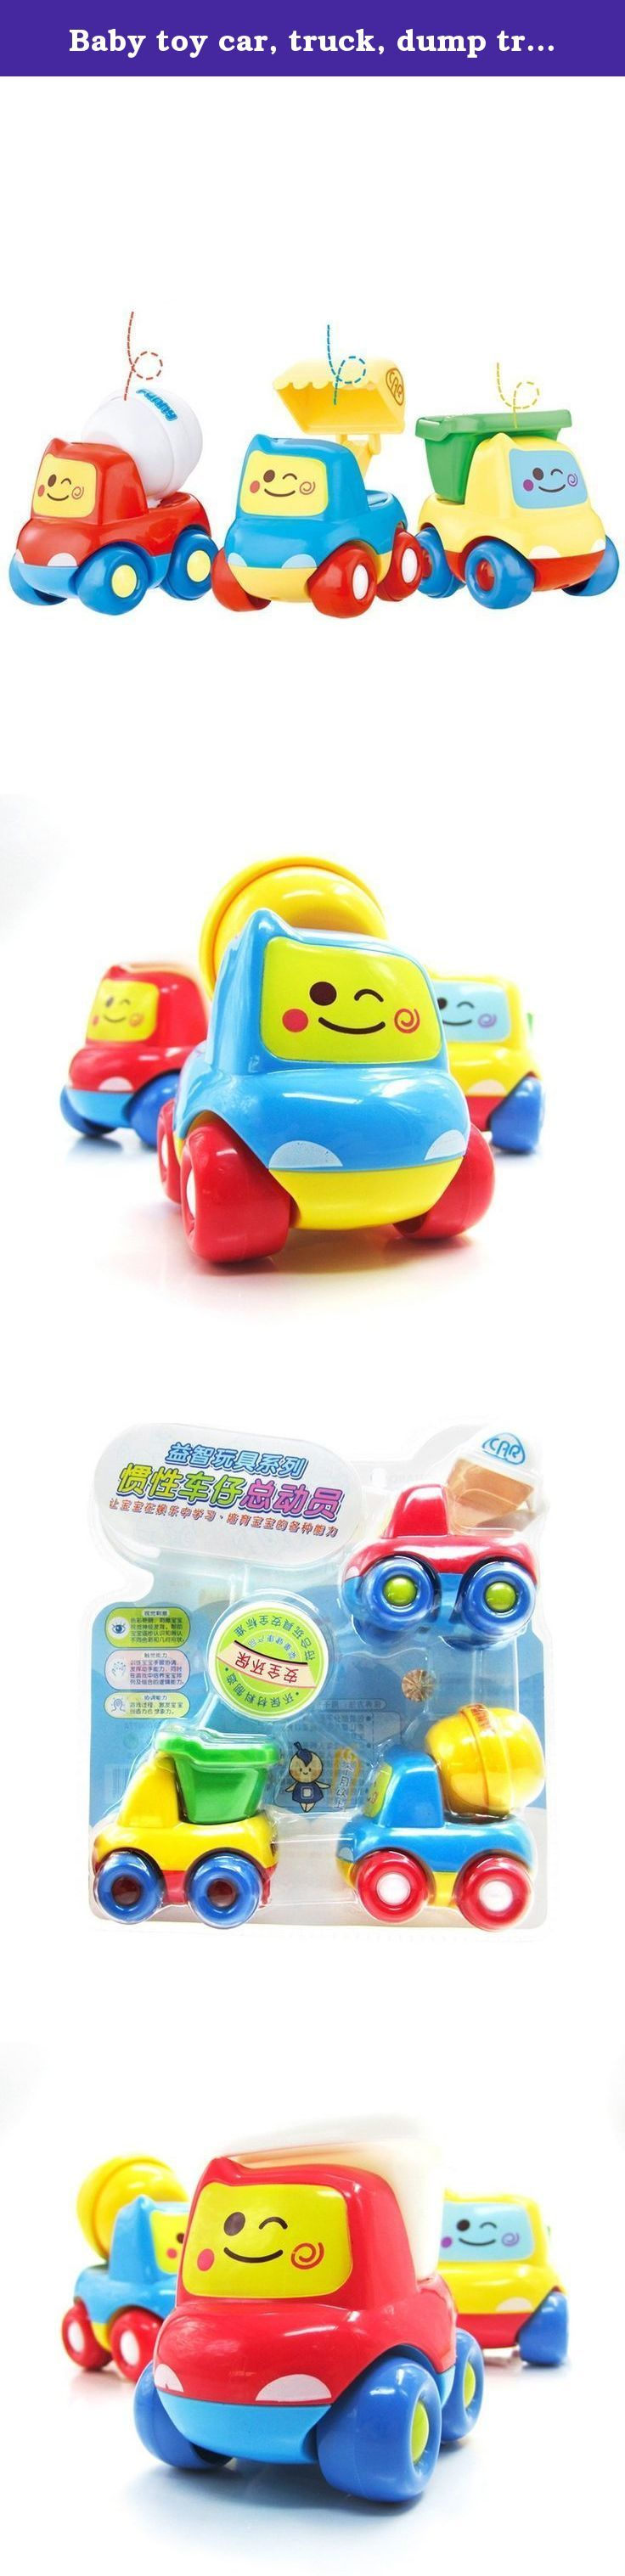 Baby toys car  Baby toy car truck dump trucks mining vehicles We operate from a